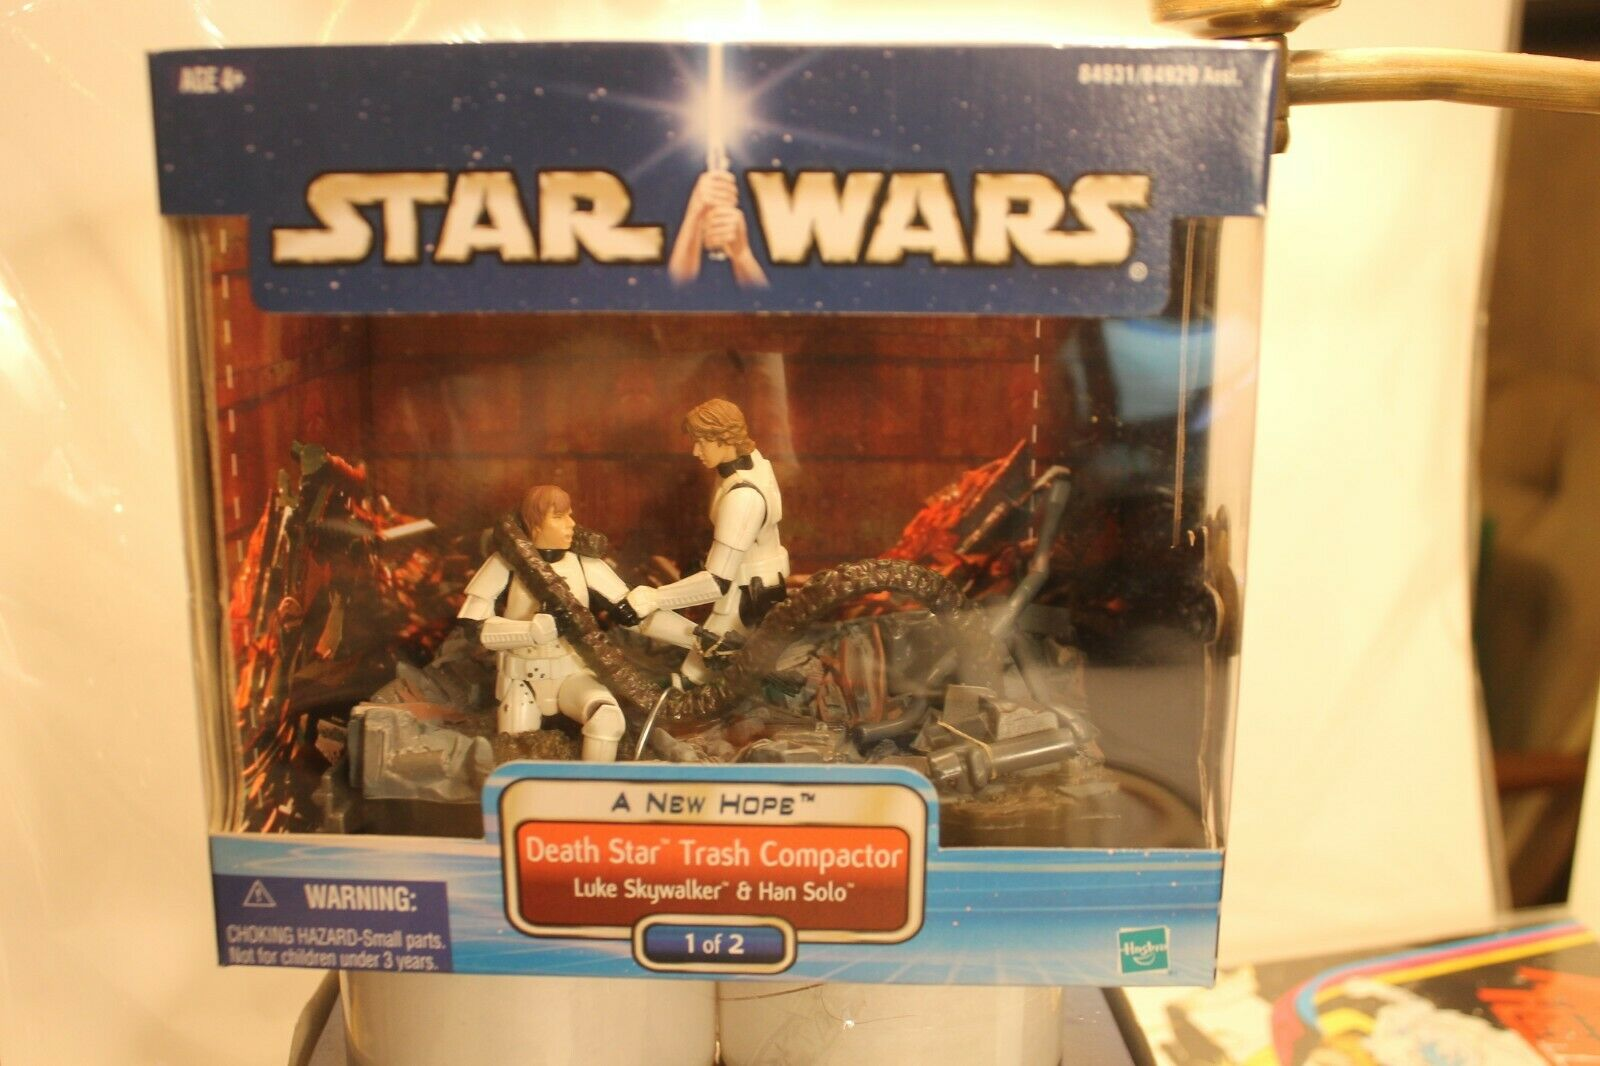 STAR WARS Death Star Trash Compactor 2012 1 of 2  A New Hope